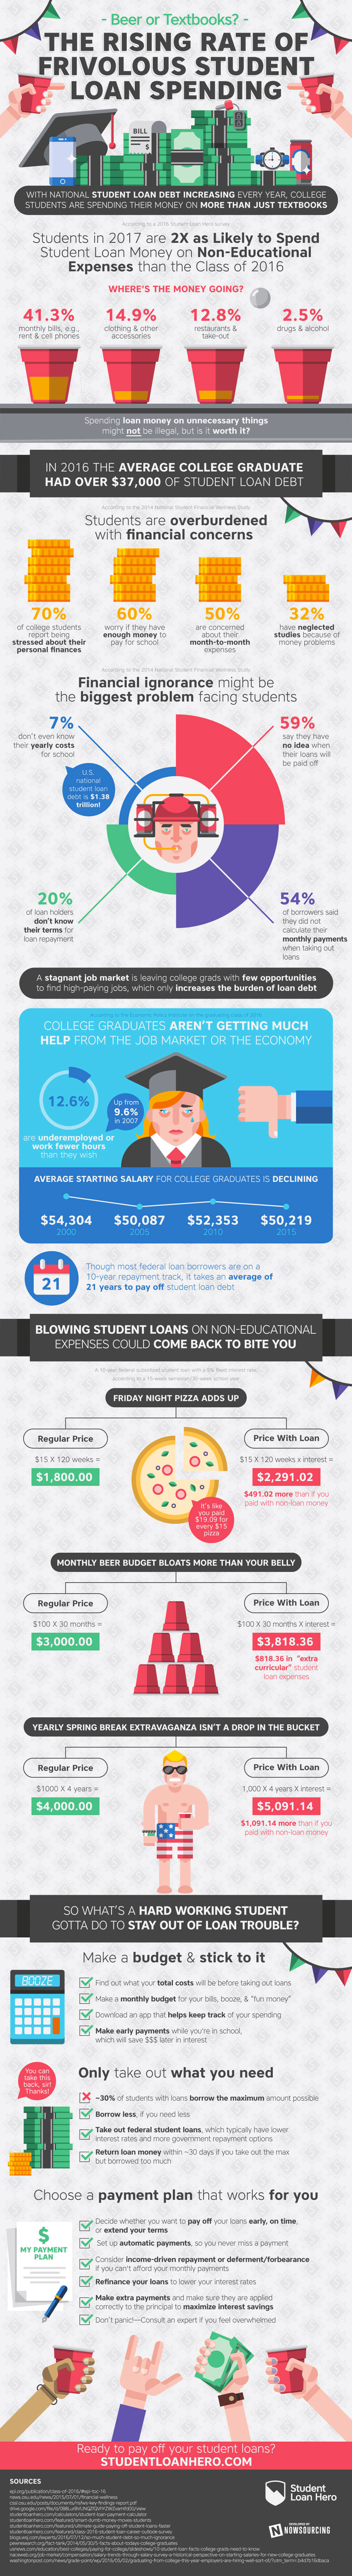 Frivolous Spending of Student Loans On Other Things - College Debt Infographic